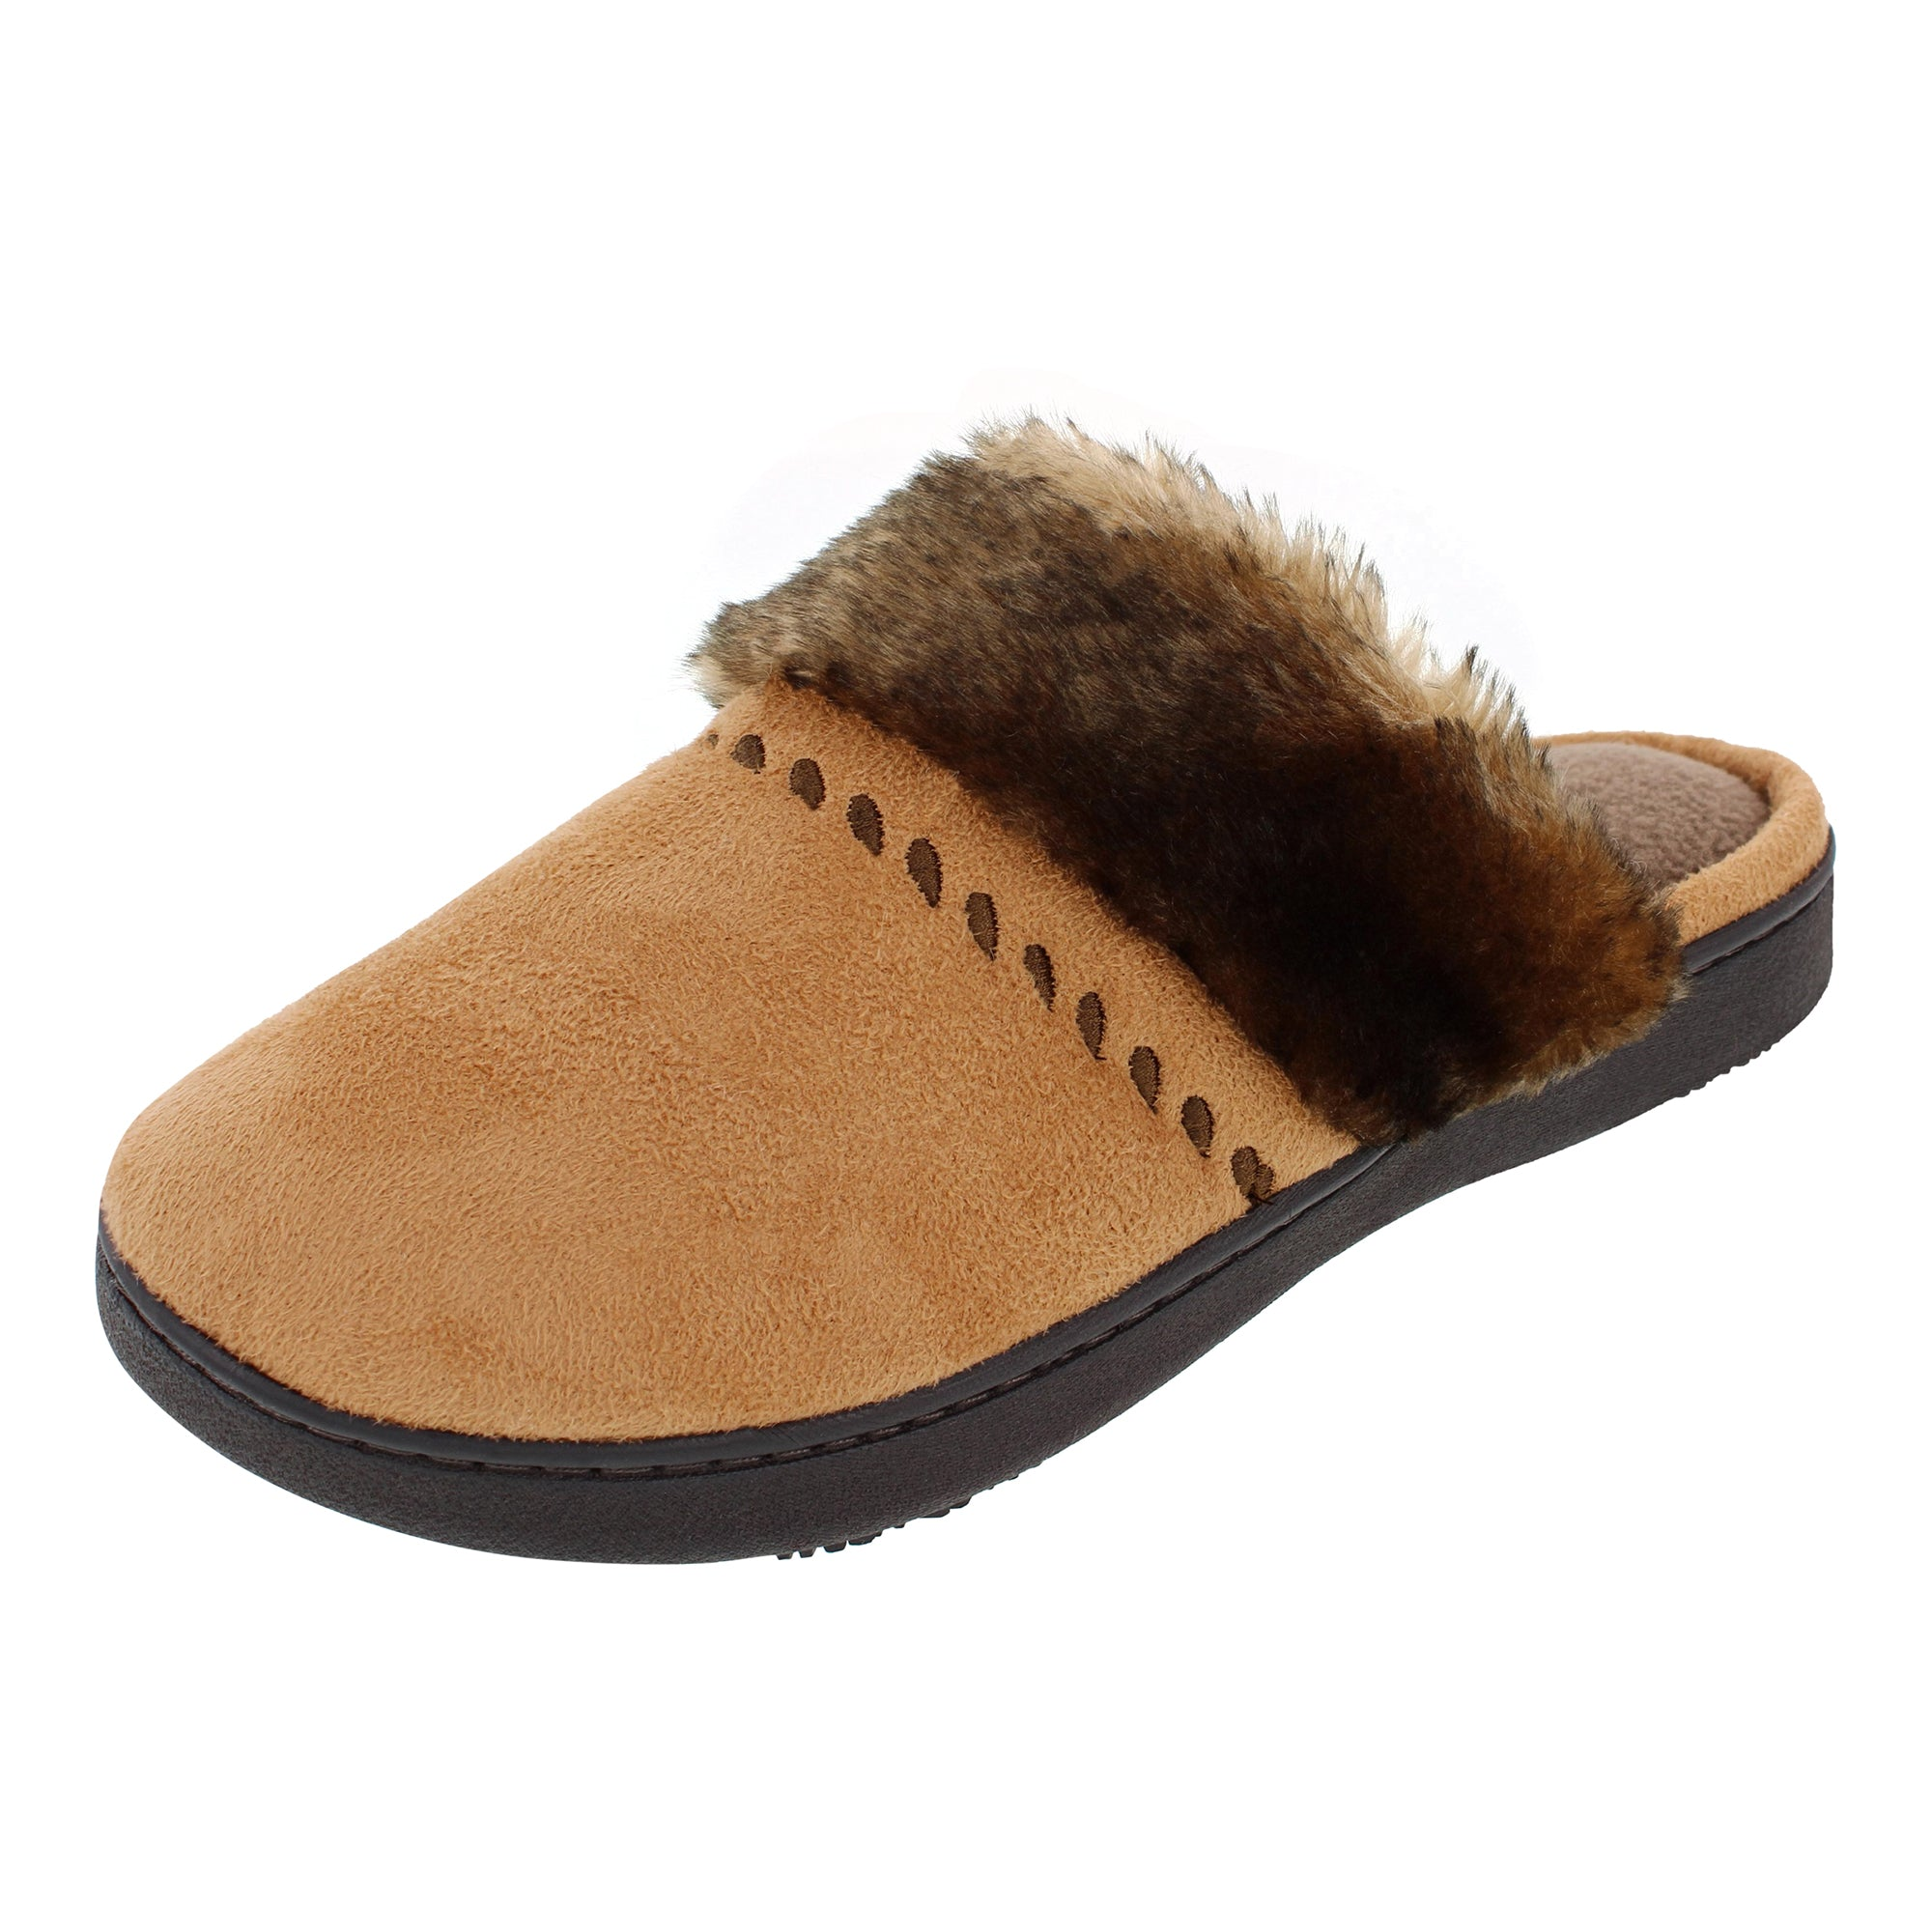 Isotoner Microsuede Clog with Faux fur cuff